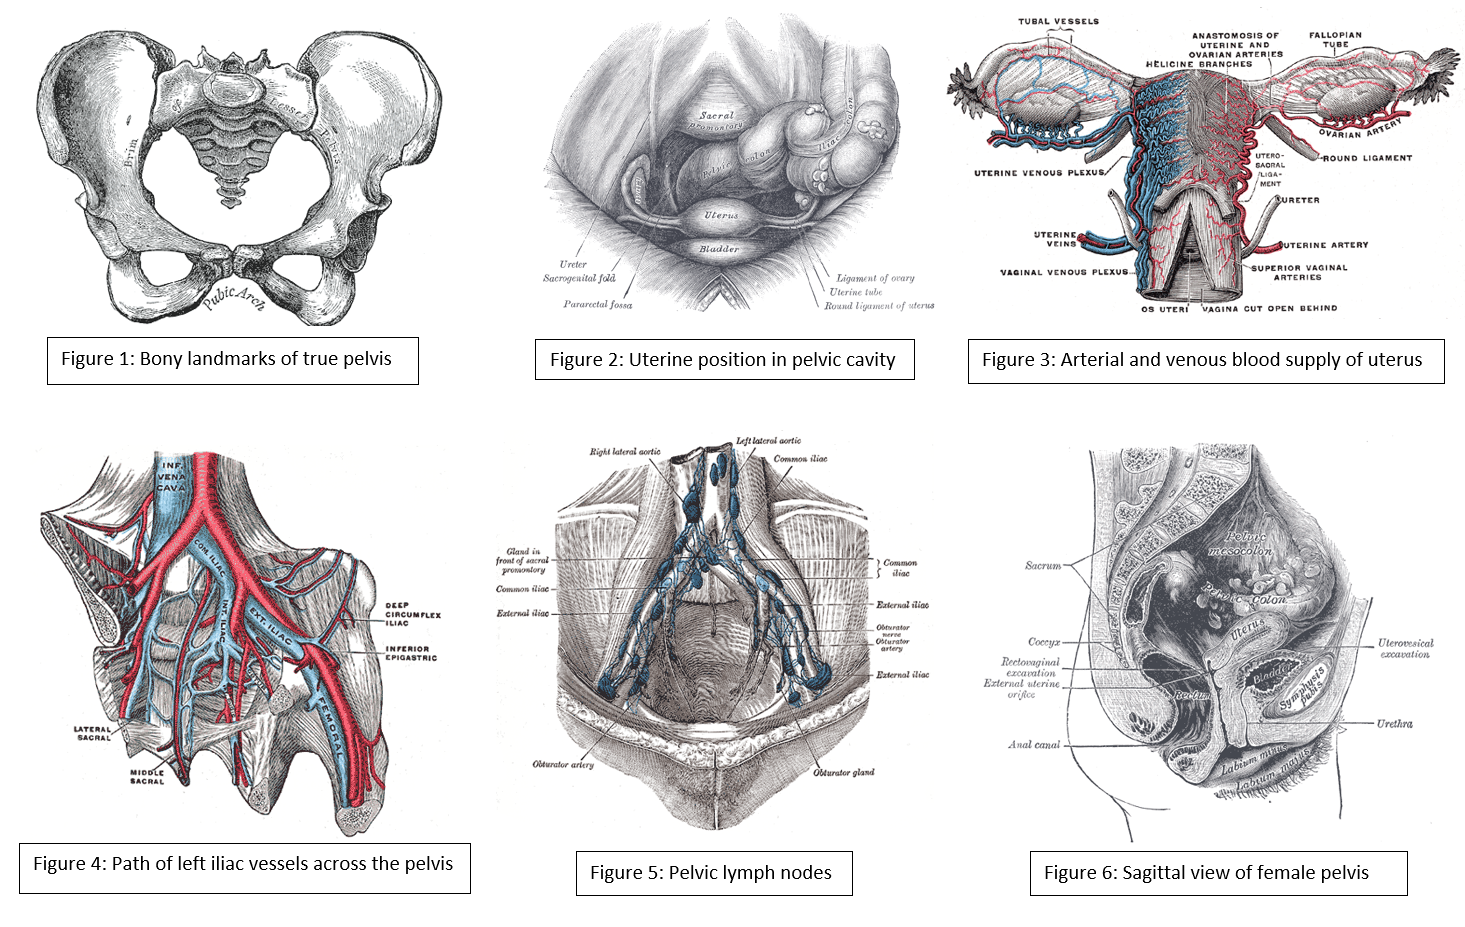 Anatomy, Abdomen and Pelvis, Female Pelvic Cavity Article